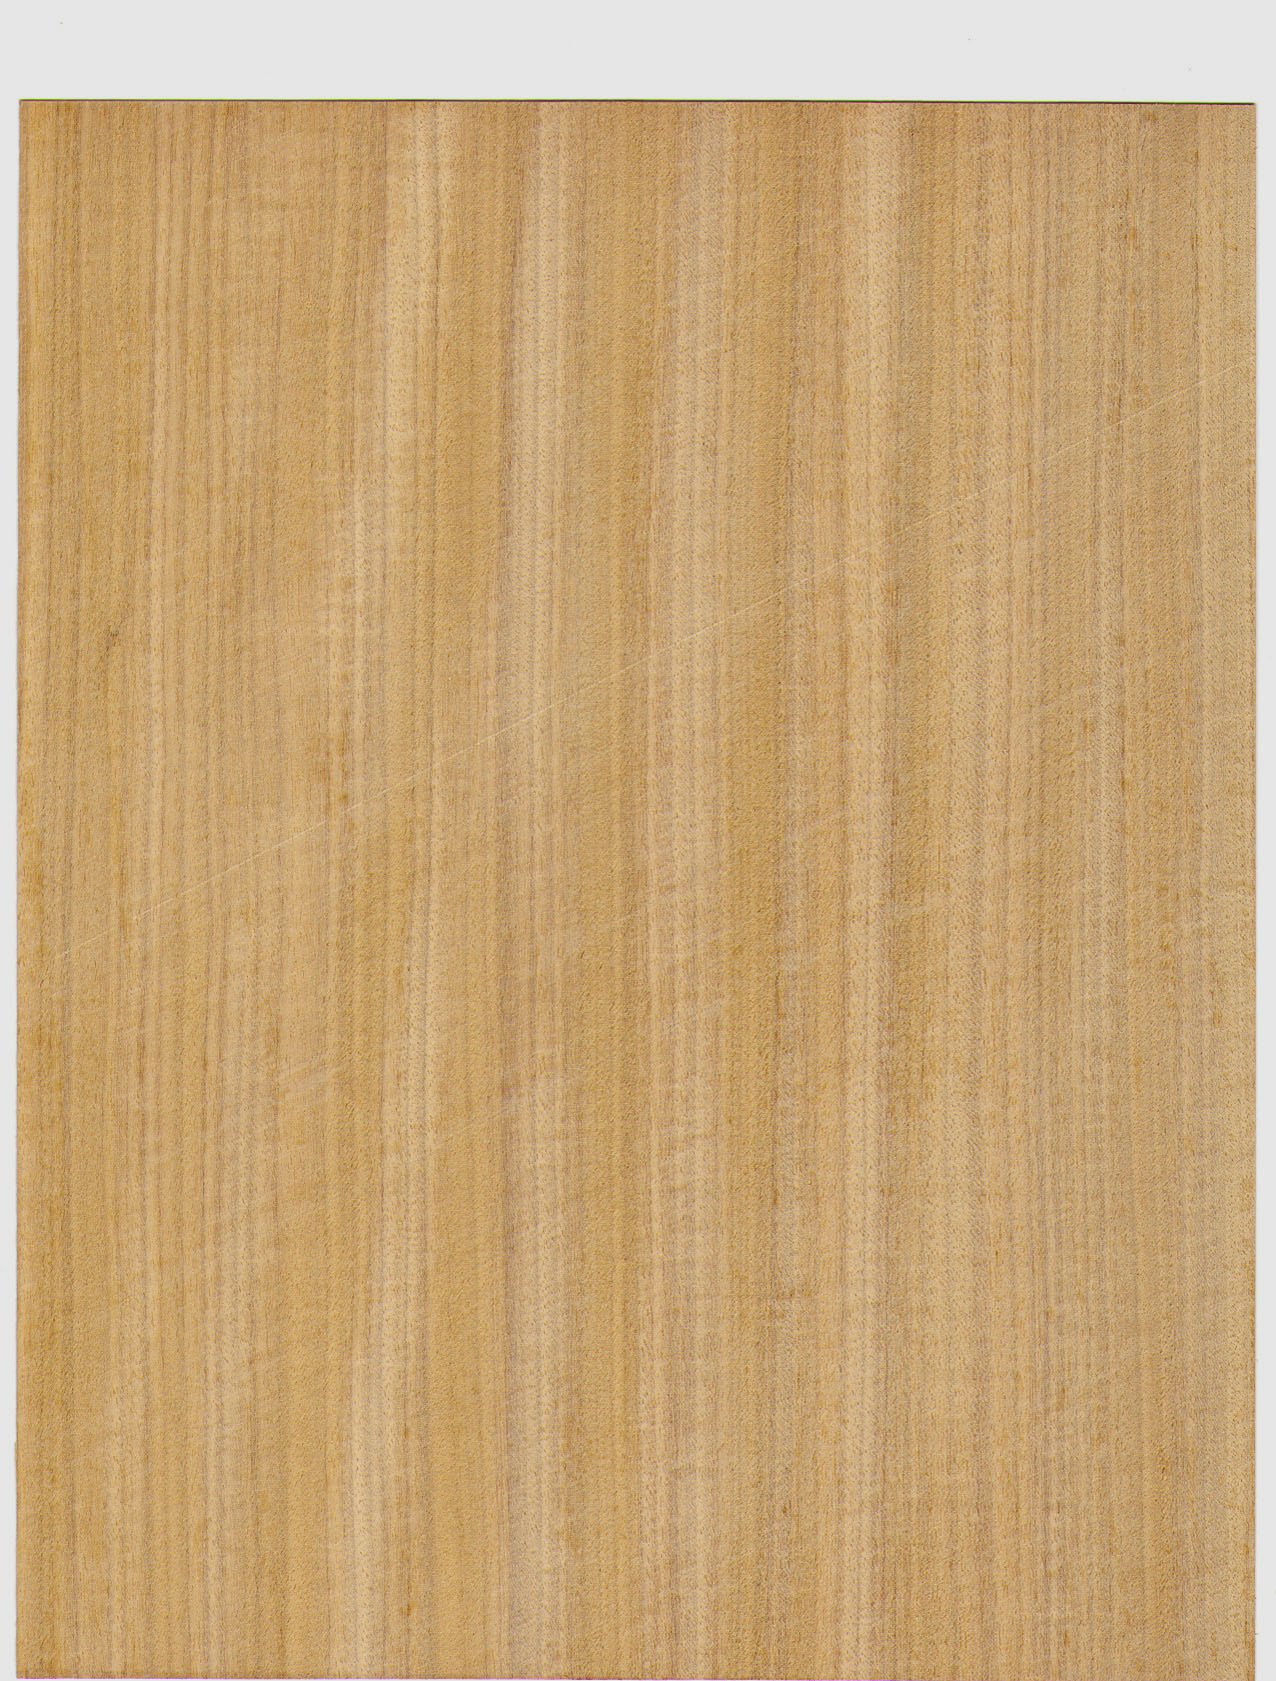 wood texture laminate download photo background wood china 8mm embossed wood parquet laminated flooring china